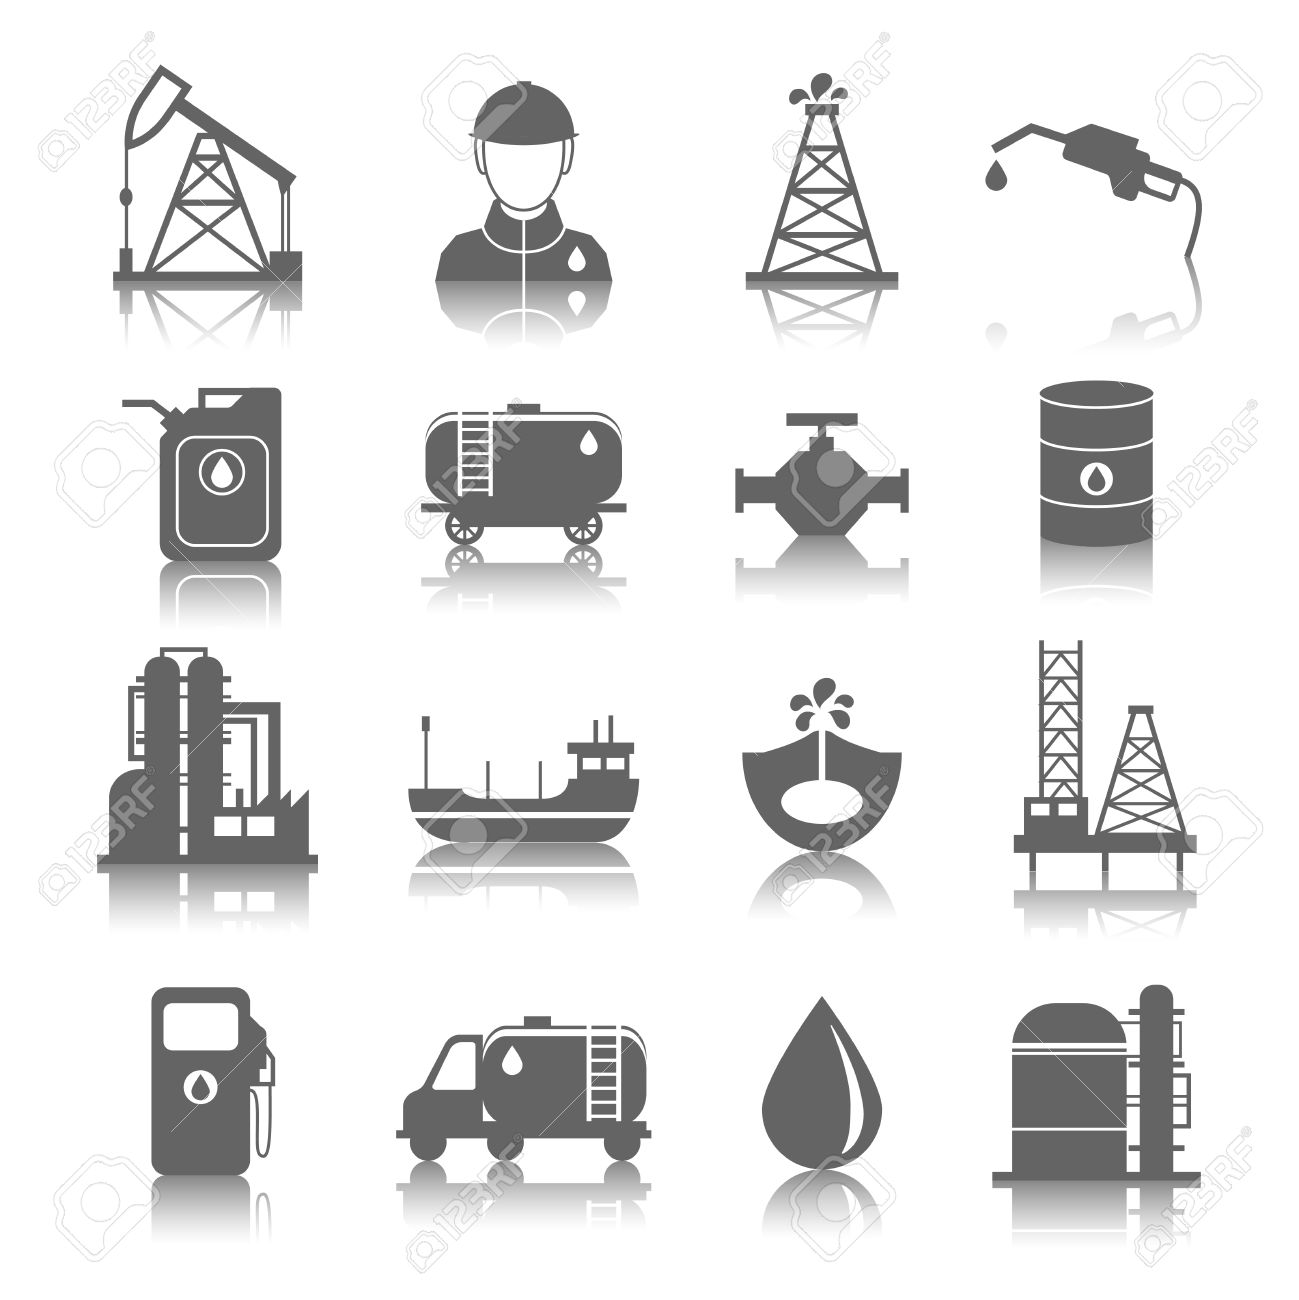 Oil terminal clipart clipground crude oil tank images stock pictures royalty free crude oil tank biocorpaavc